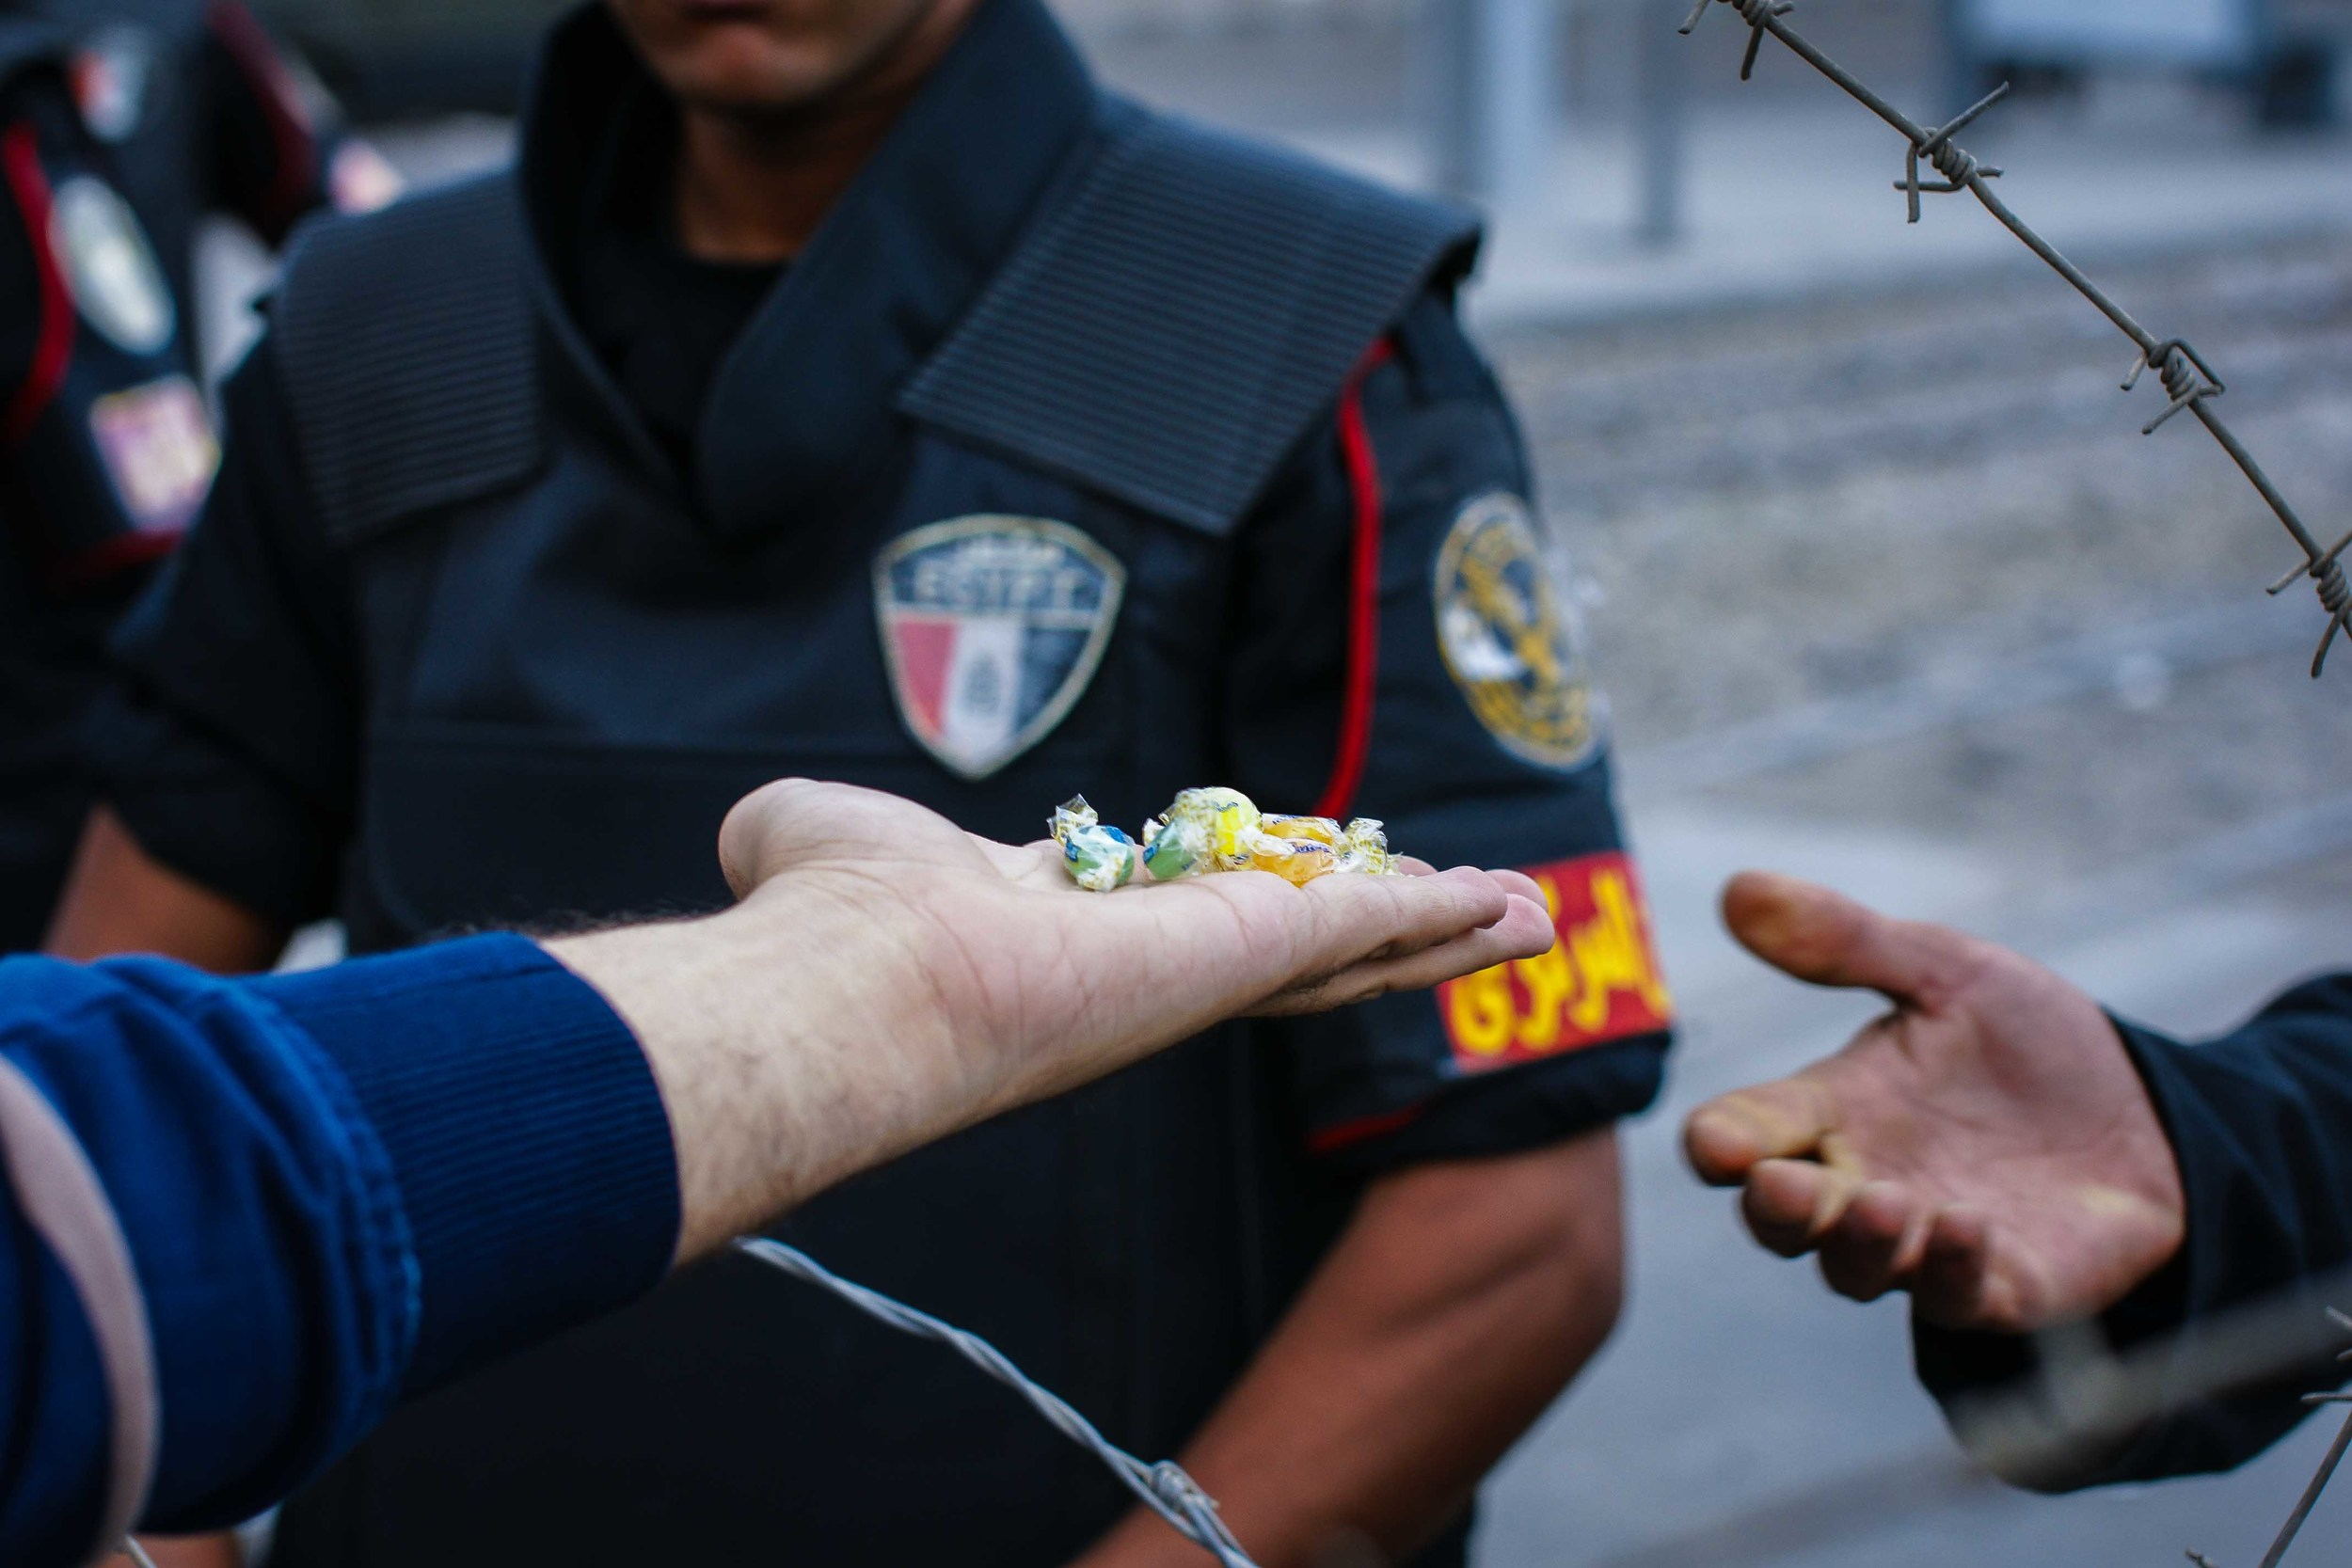 A protestor hands small candies through the barbed wire to a riot police officer. Candies, I might add, which the officer readily accepted.